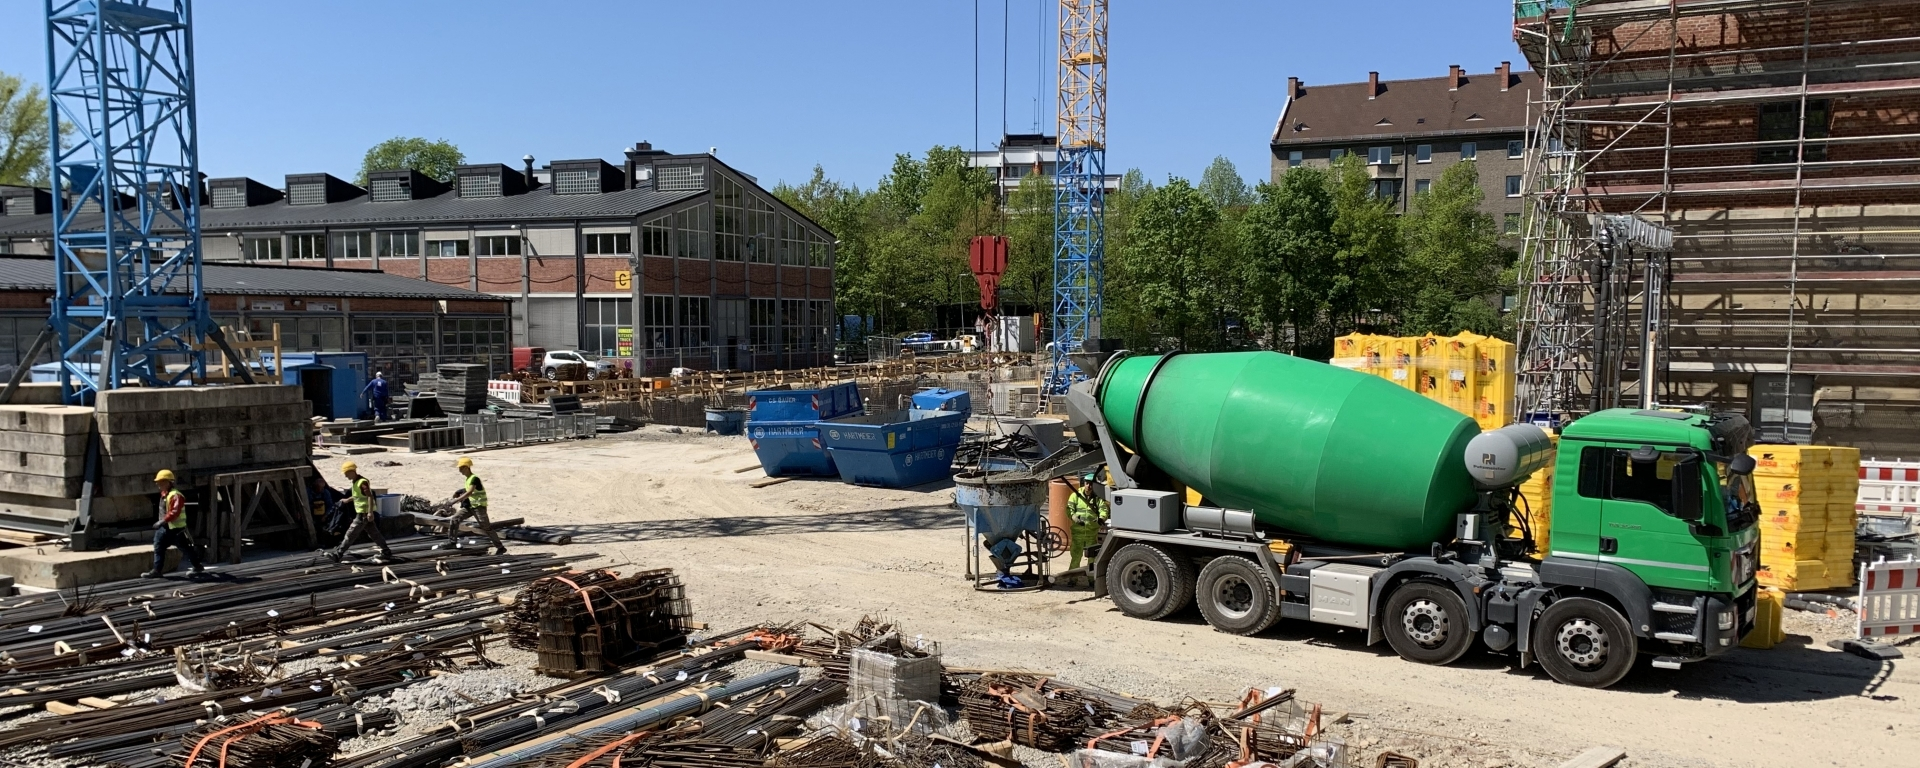 New time-lapse Video of the Gasteig Construction Site